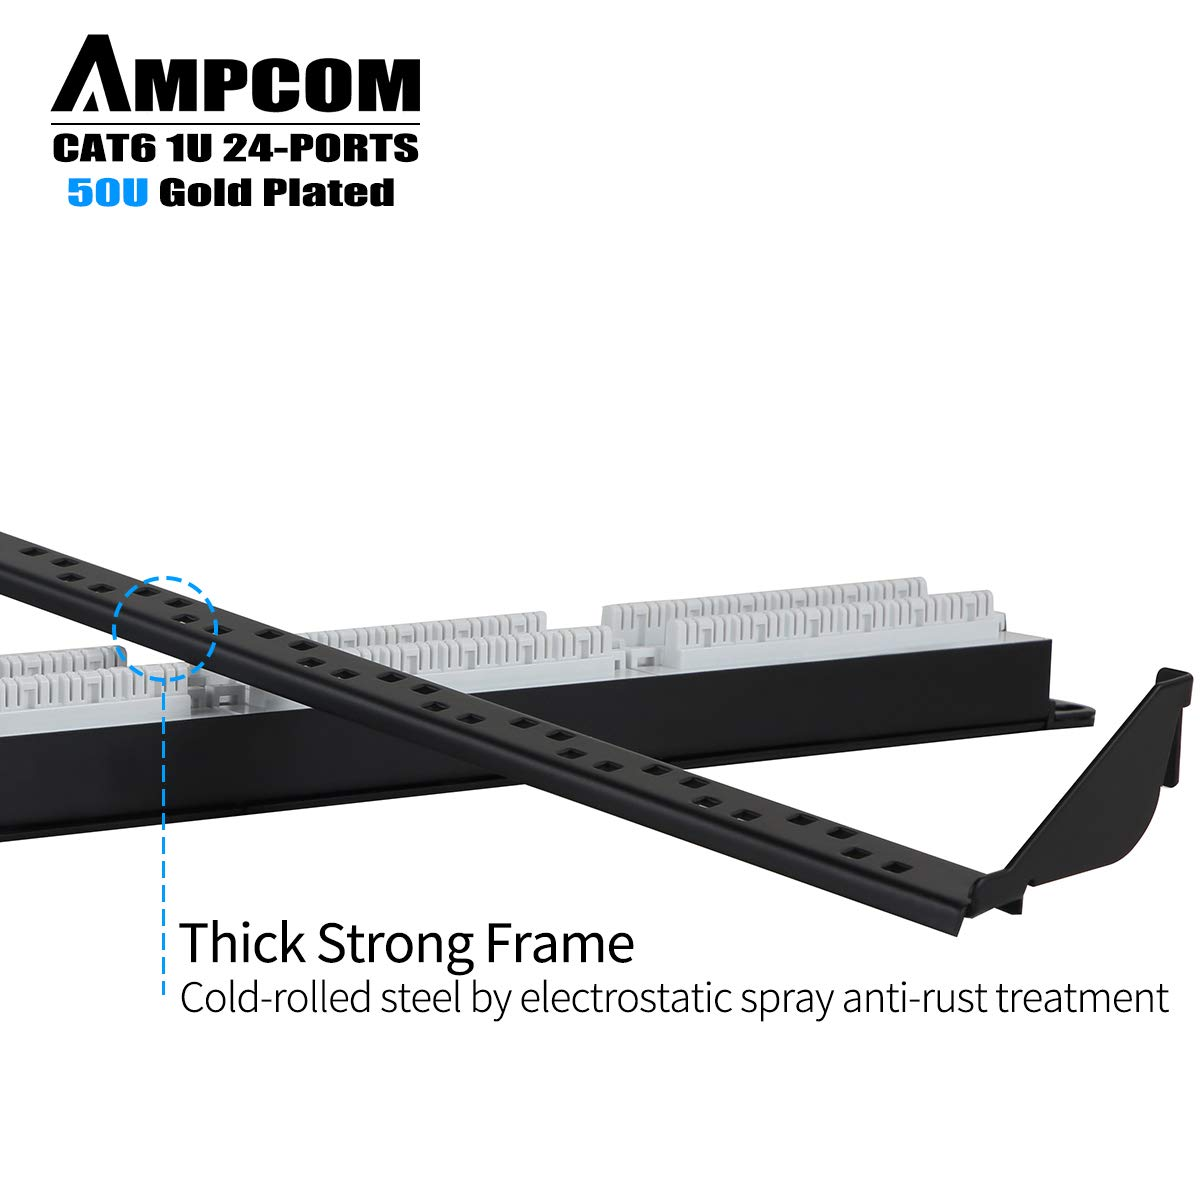 Ampcom Supreme Series Cat6 Patch Panel50 Gold Plated Panel 110 Type 24 Port 568a B Compatible Plated1u Rackmount Or Wallmount Punch Down Panelcable Management Panellabel Boardrj45568a 568b Computers